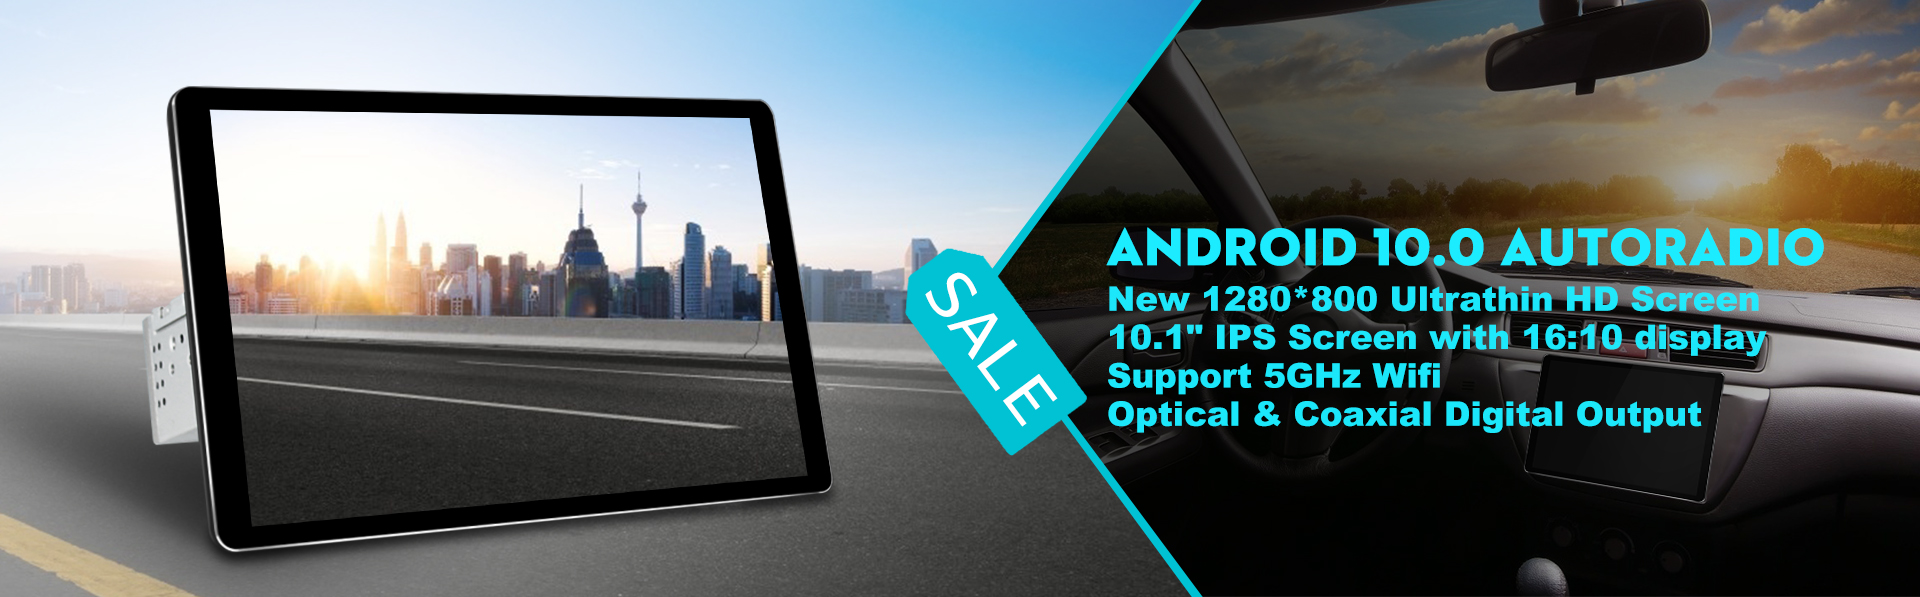 android 10.0 autoradio, double din head unit, android 10.0 car radio, 10.1 inch car stereo